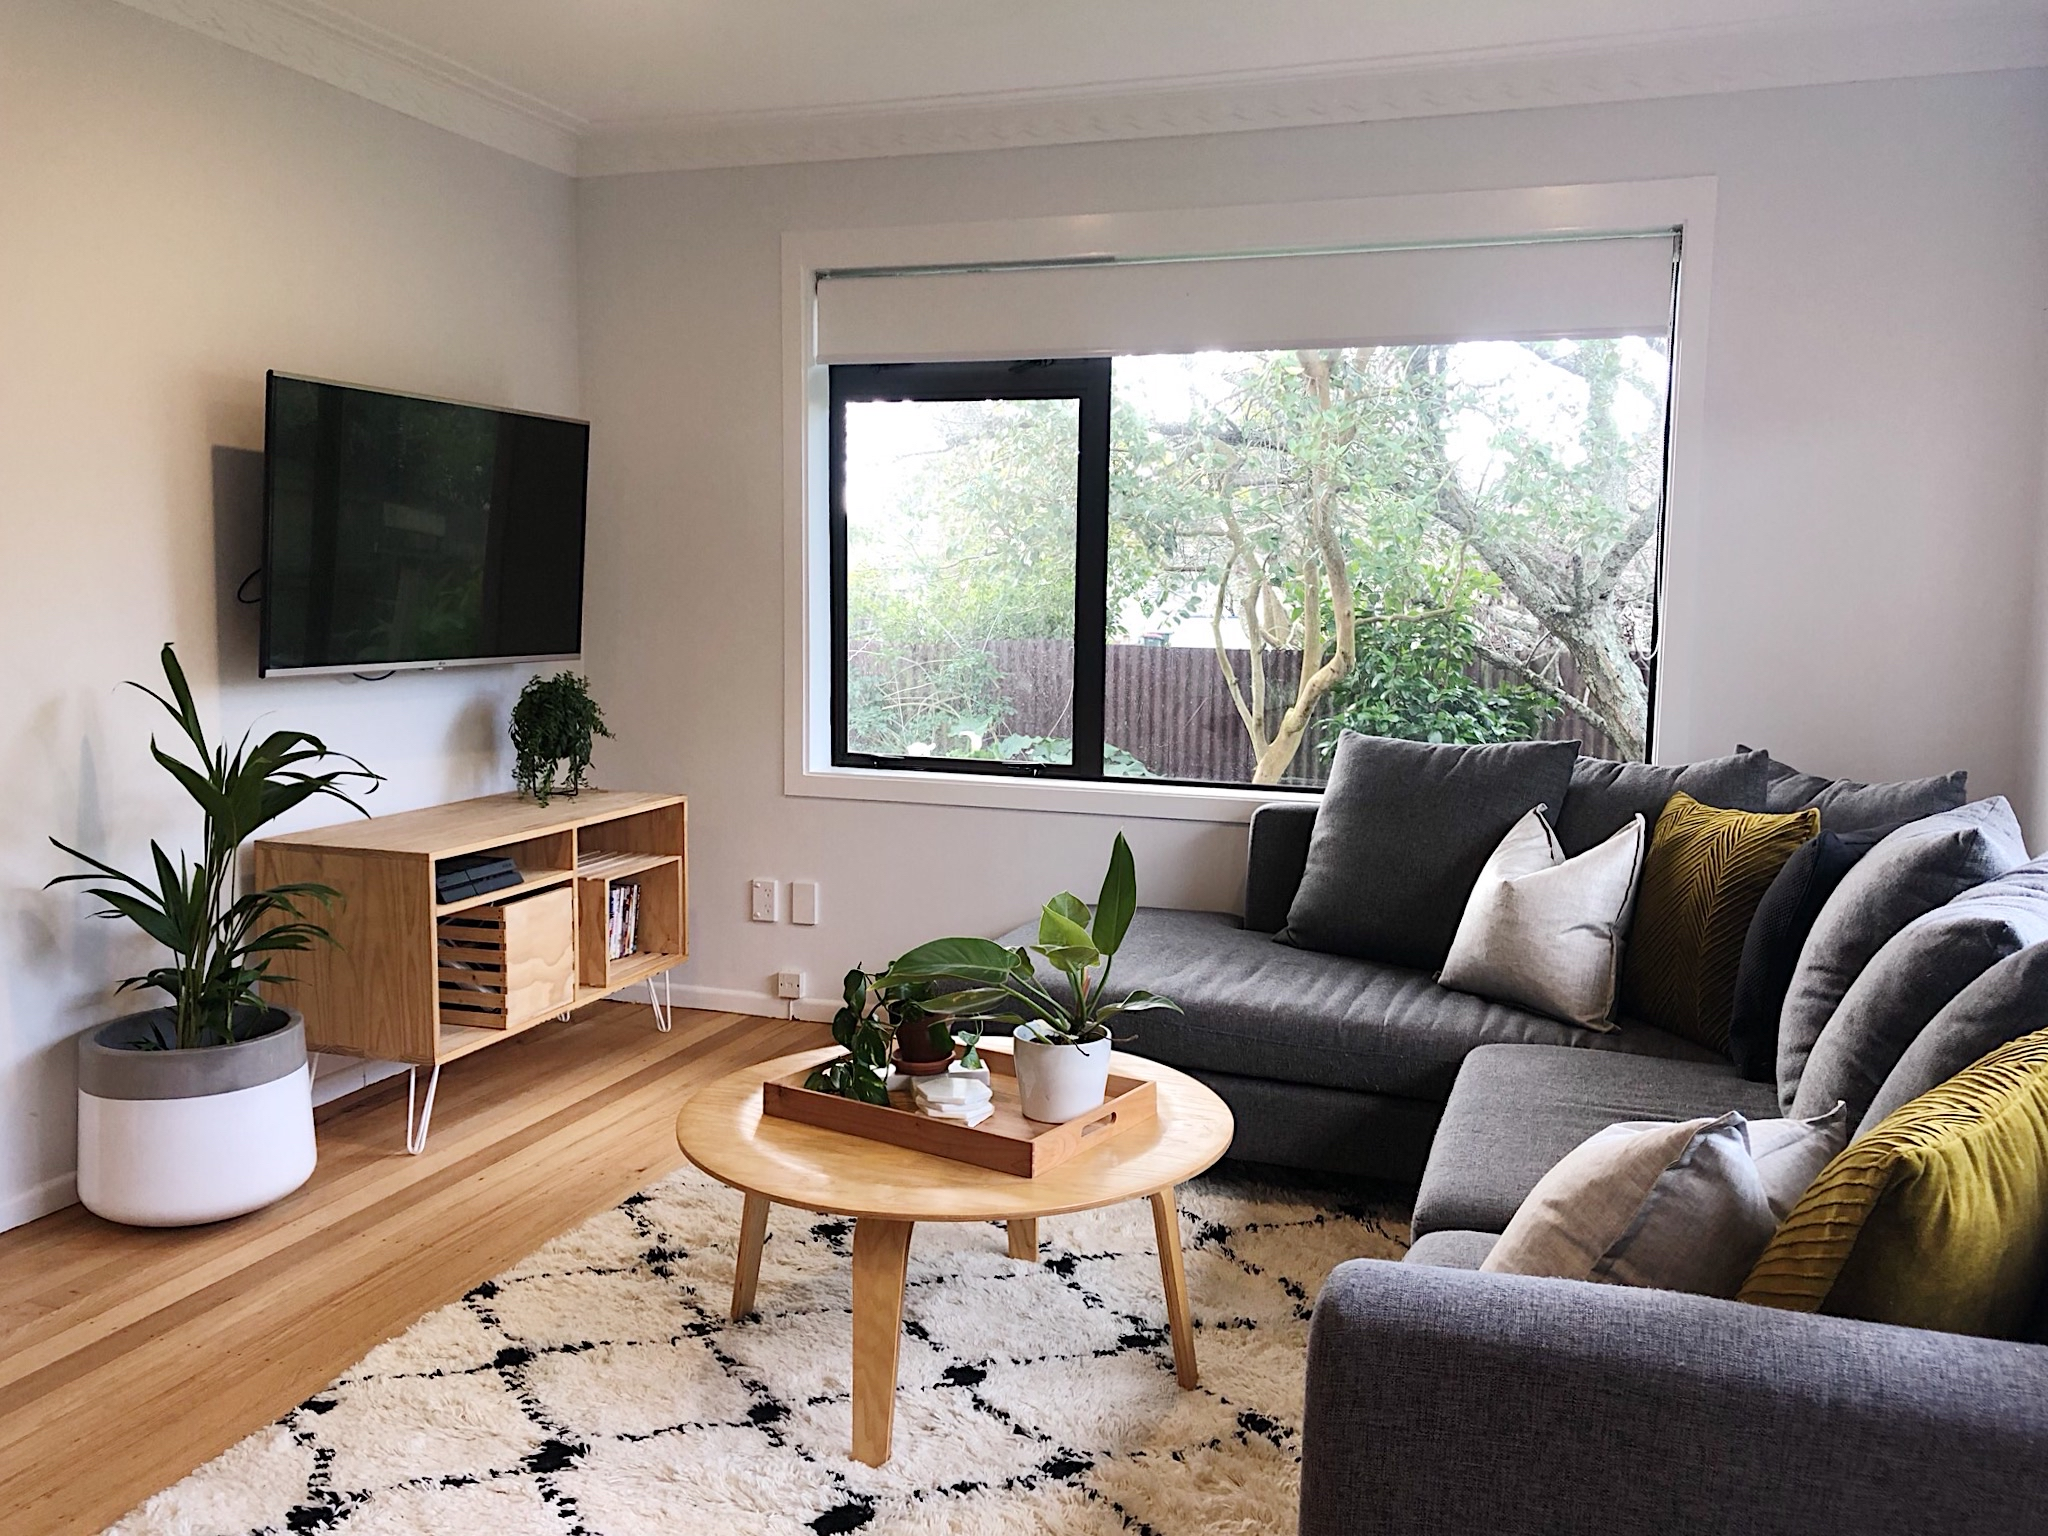 Pearson + Project The Reno Race The Rookies Lounge Tawa Floor Small Space Lounge Plant TV Unit Coffee Table Grey Couch.jpg